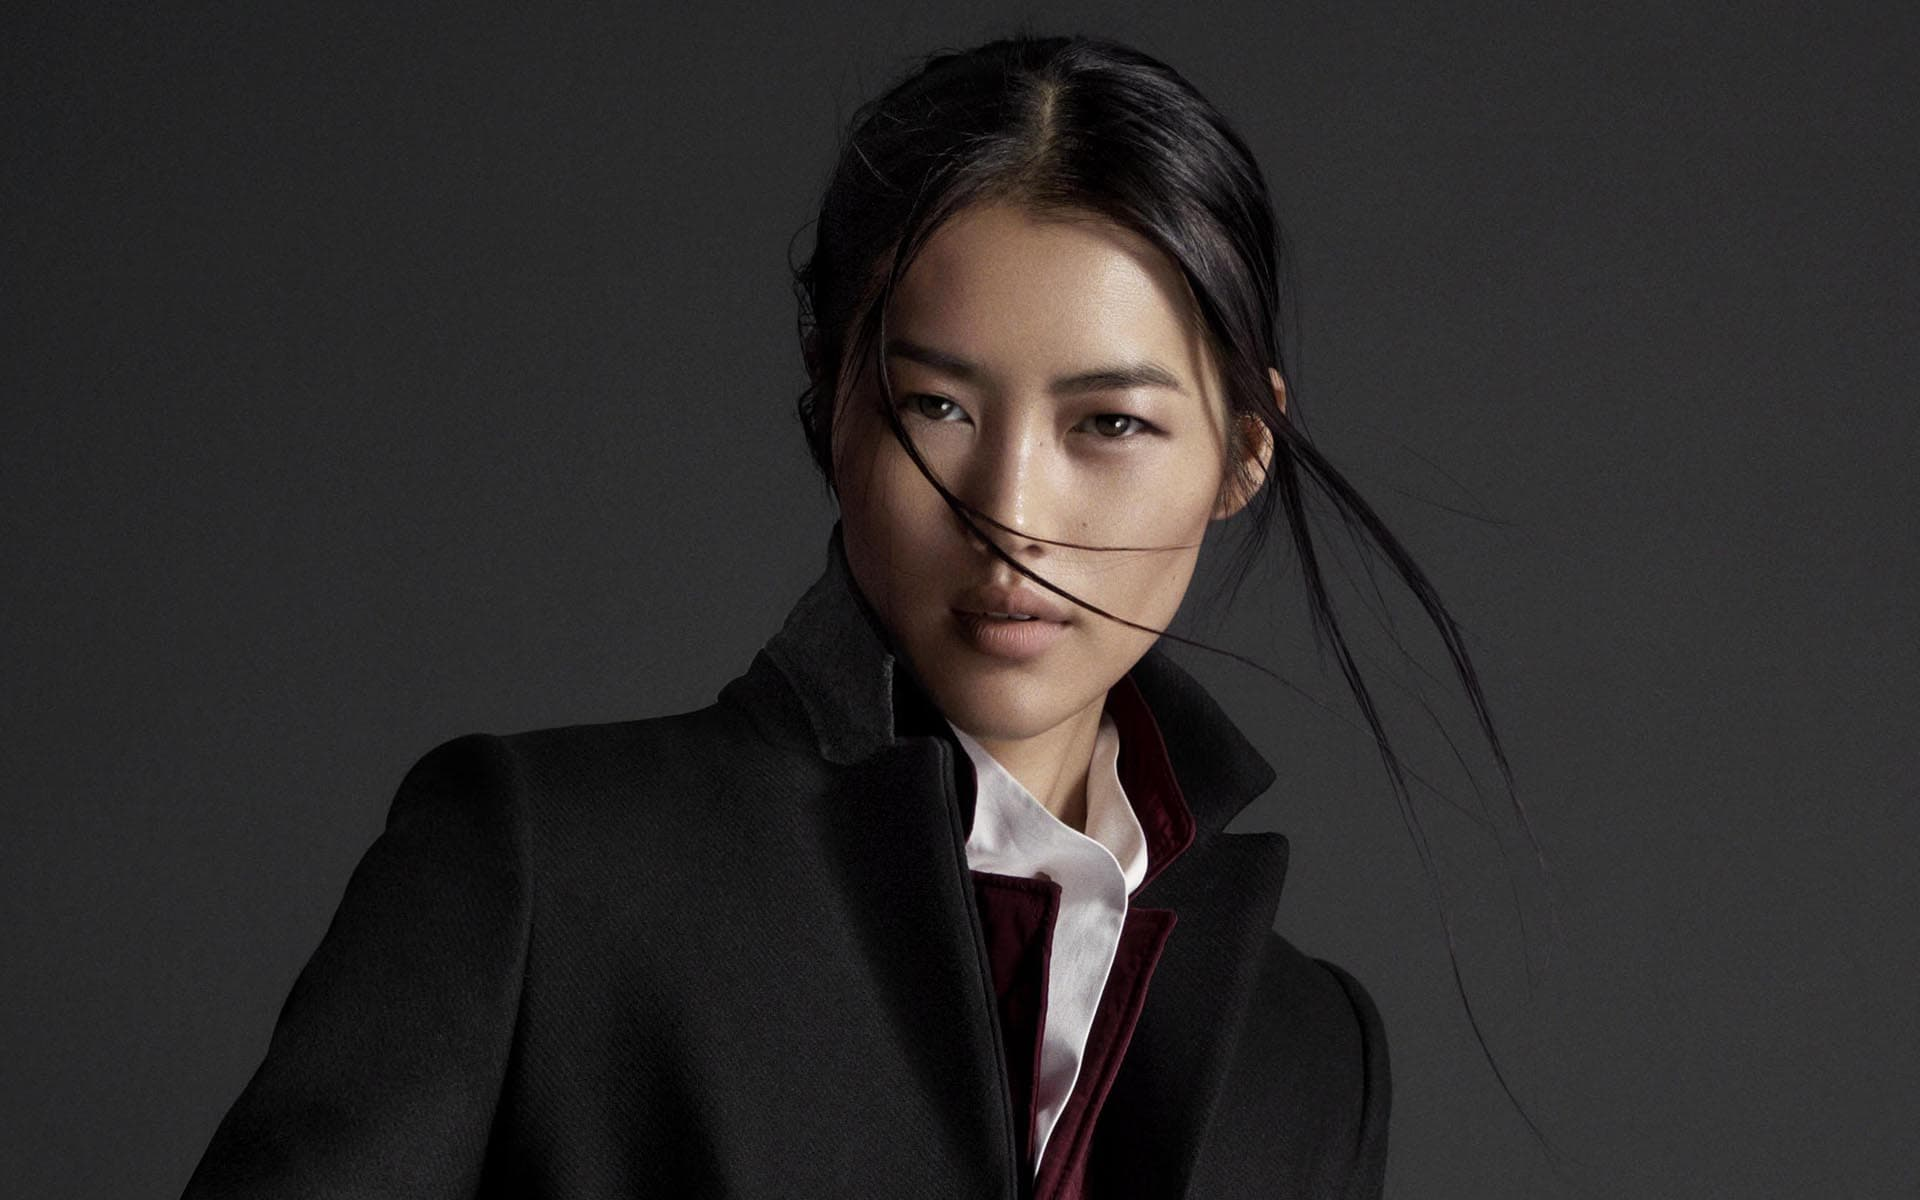 Liu Wen dark background HD images